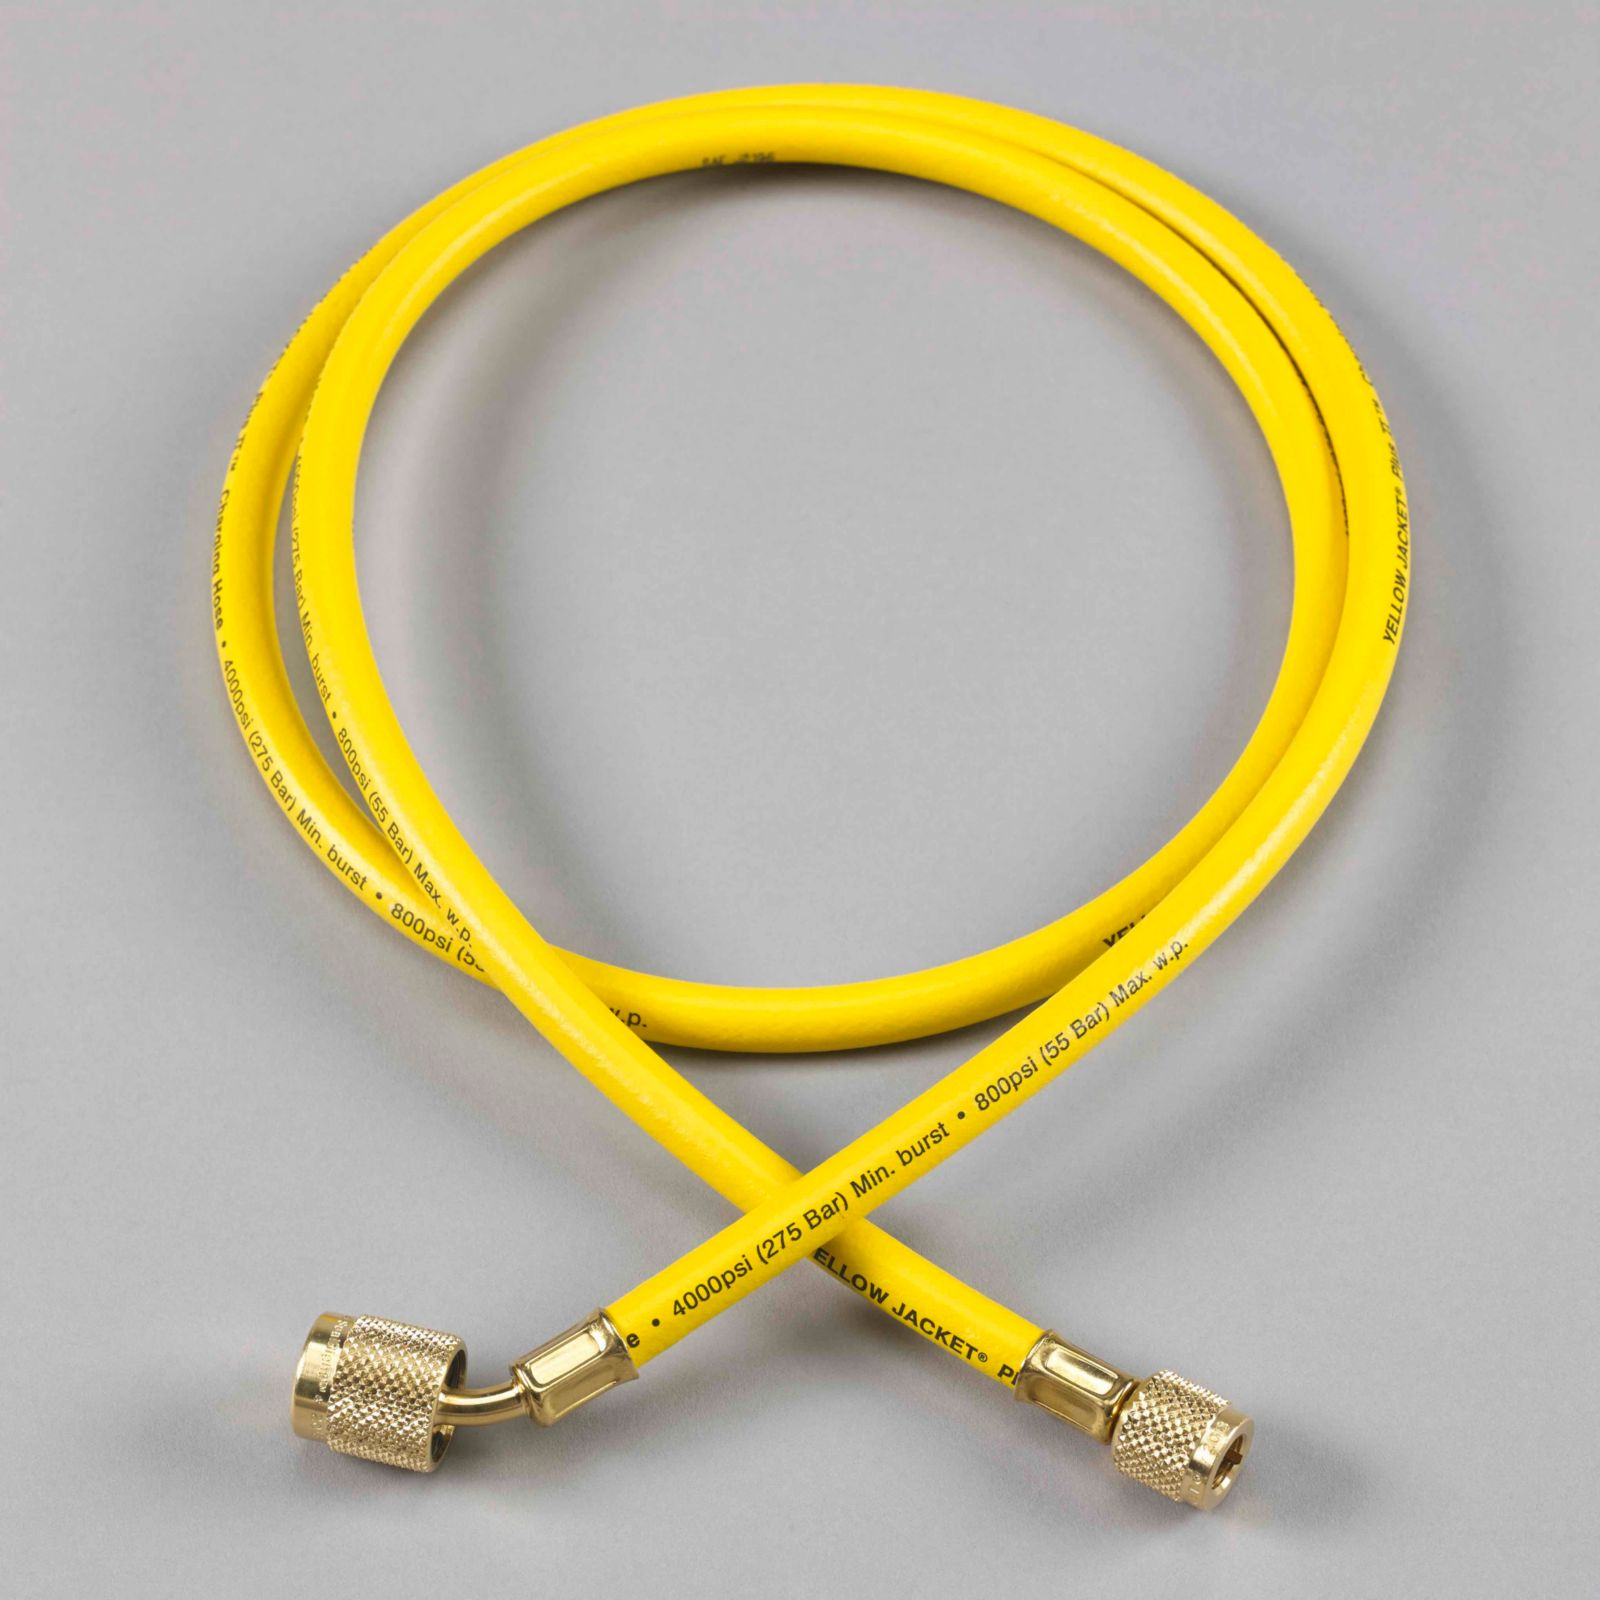 "Yellow Jacket 22060 - Plus II Yellow Hose with SealRight Low Loss Anti-Blow Back Fitting 1/4"" X 5'"